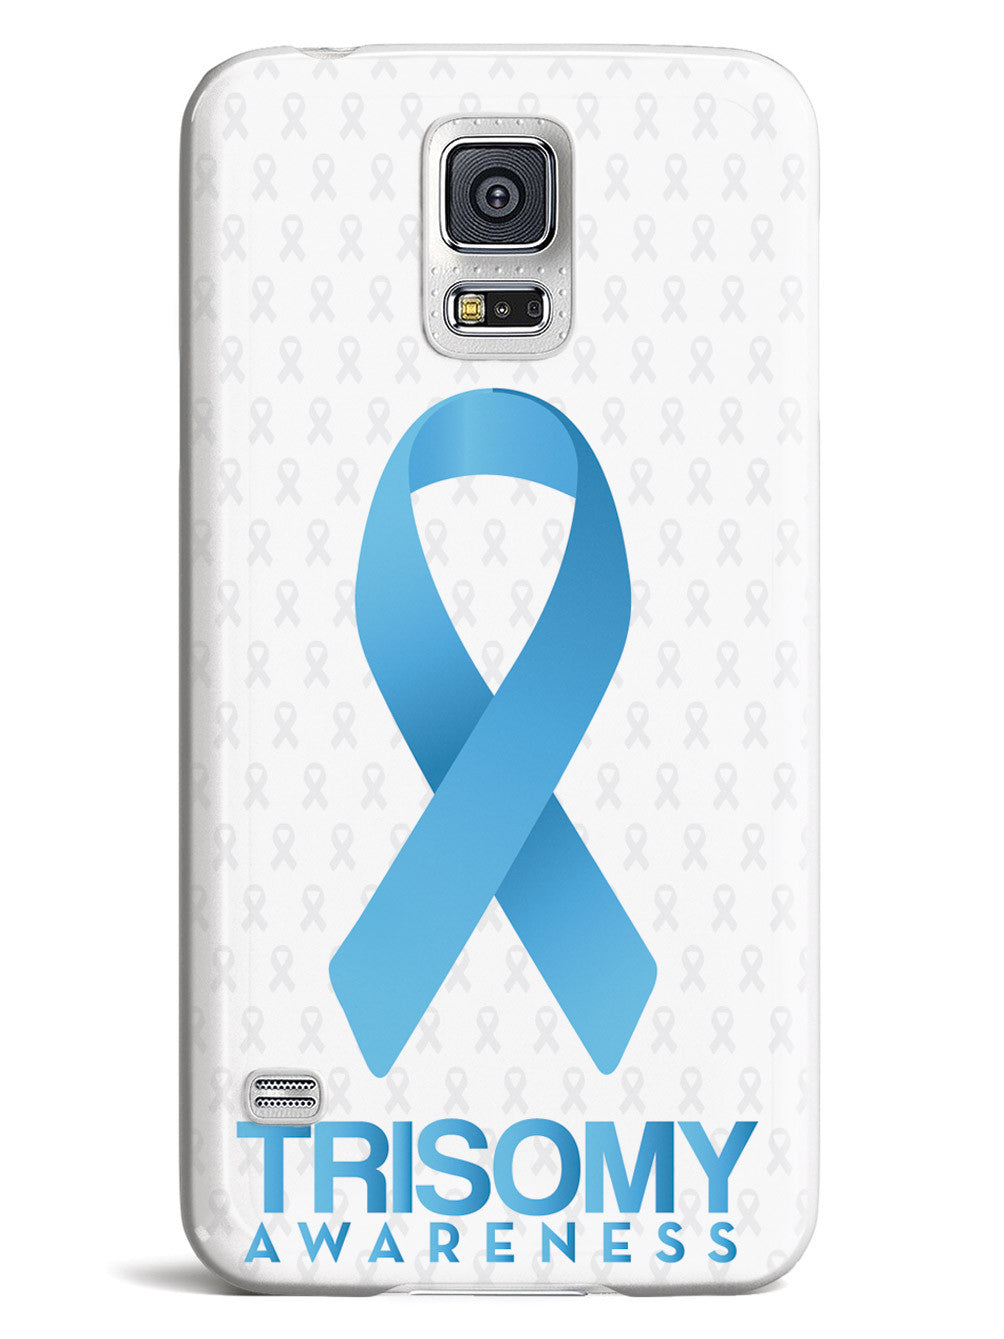 Trisomy Awareness - Awareness Ribbon - White Case